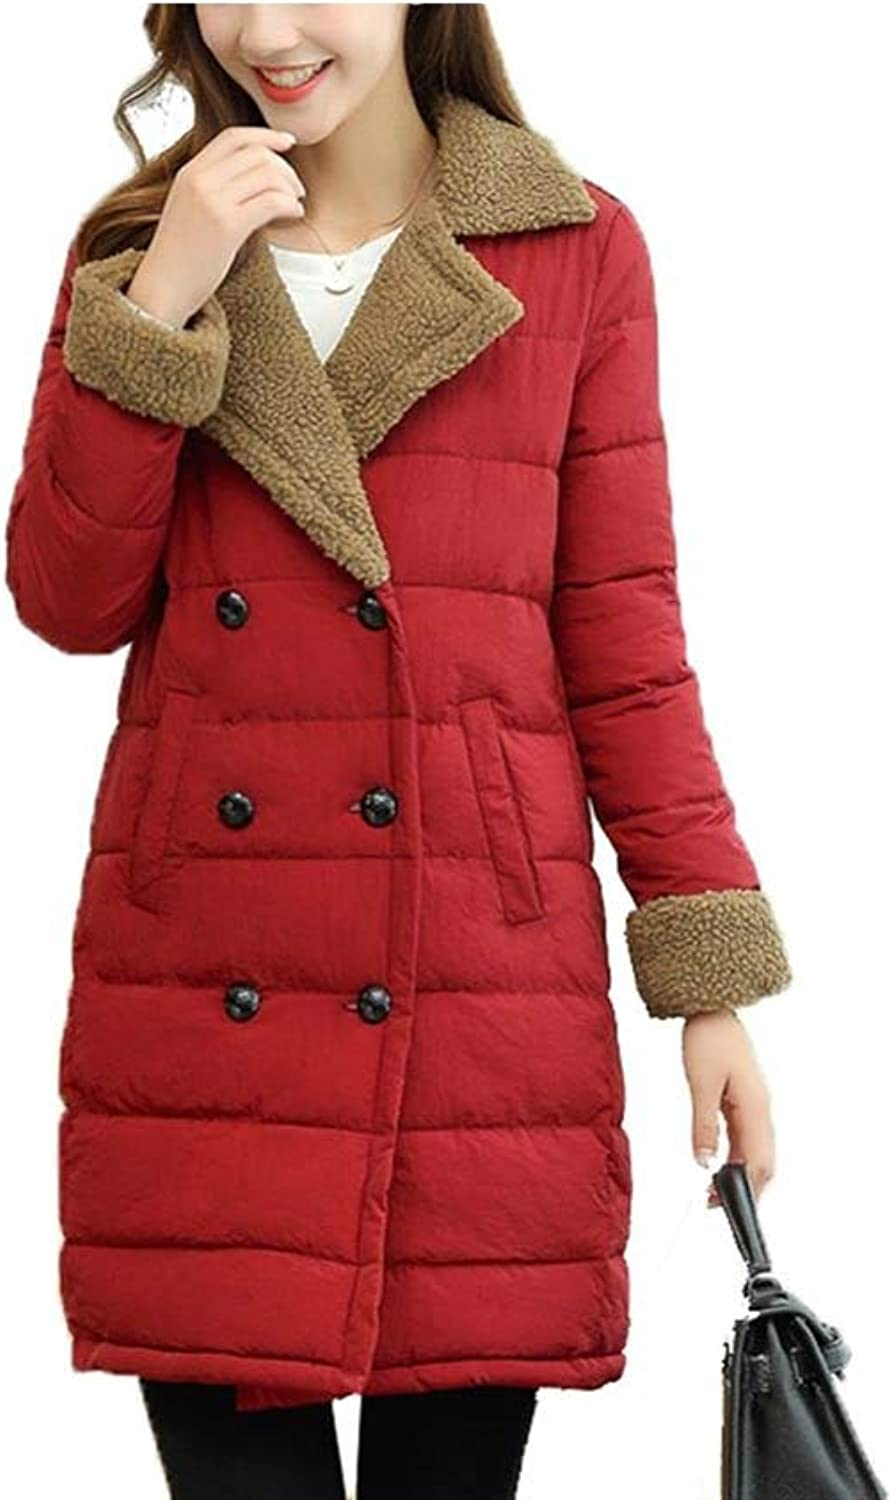 Dotoo Slim LongSleeved Fashion Coat Ladies Winter DoubleBreasted Lapel Cotton Suit